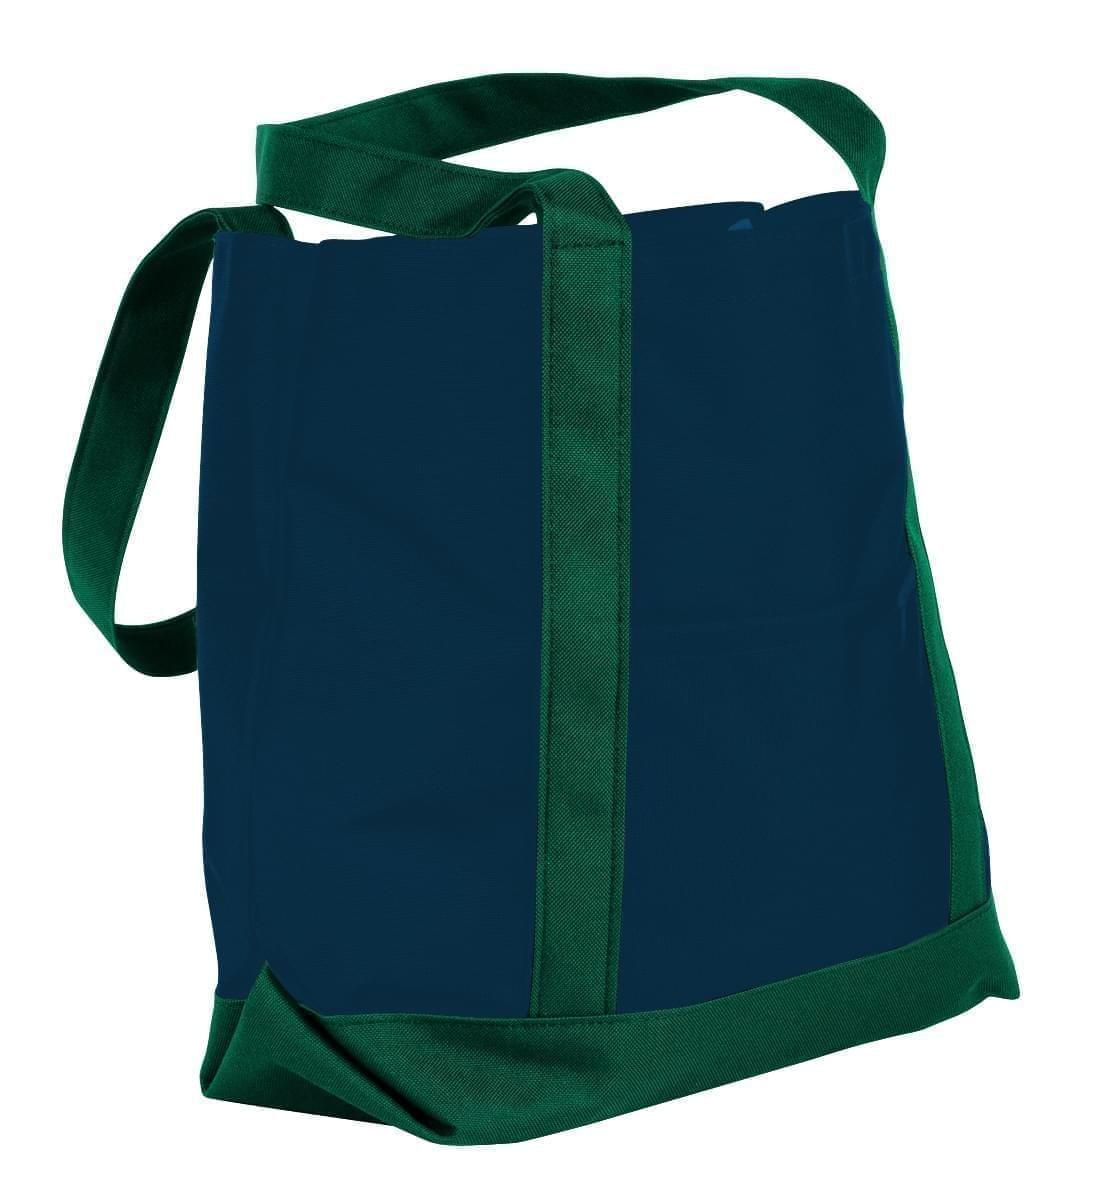 USA Made Canvas Fashion Tote Bags, Navy-Hunter Green, XAACL1UACV